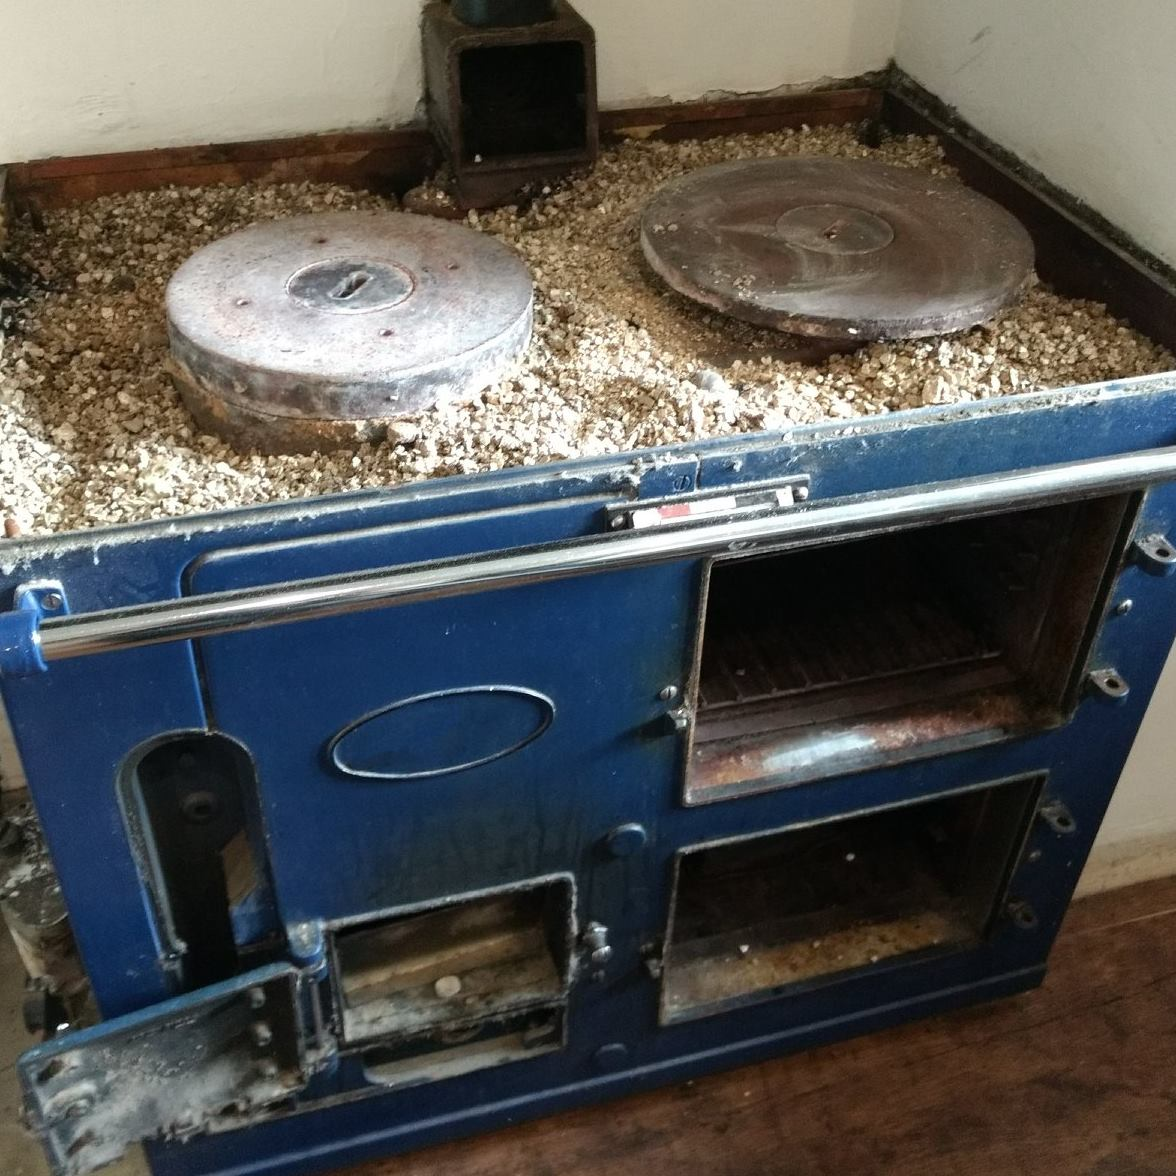 Aga range cooker with hob and lids removed